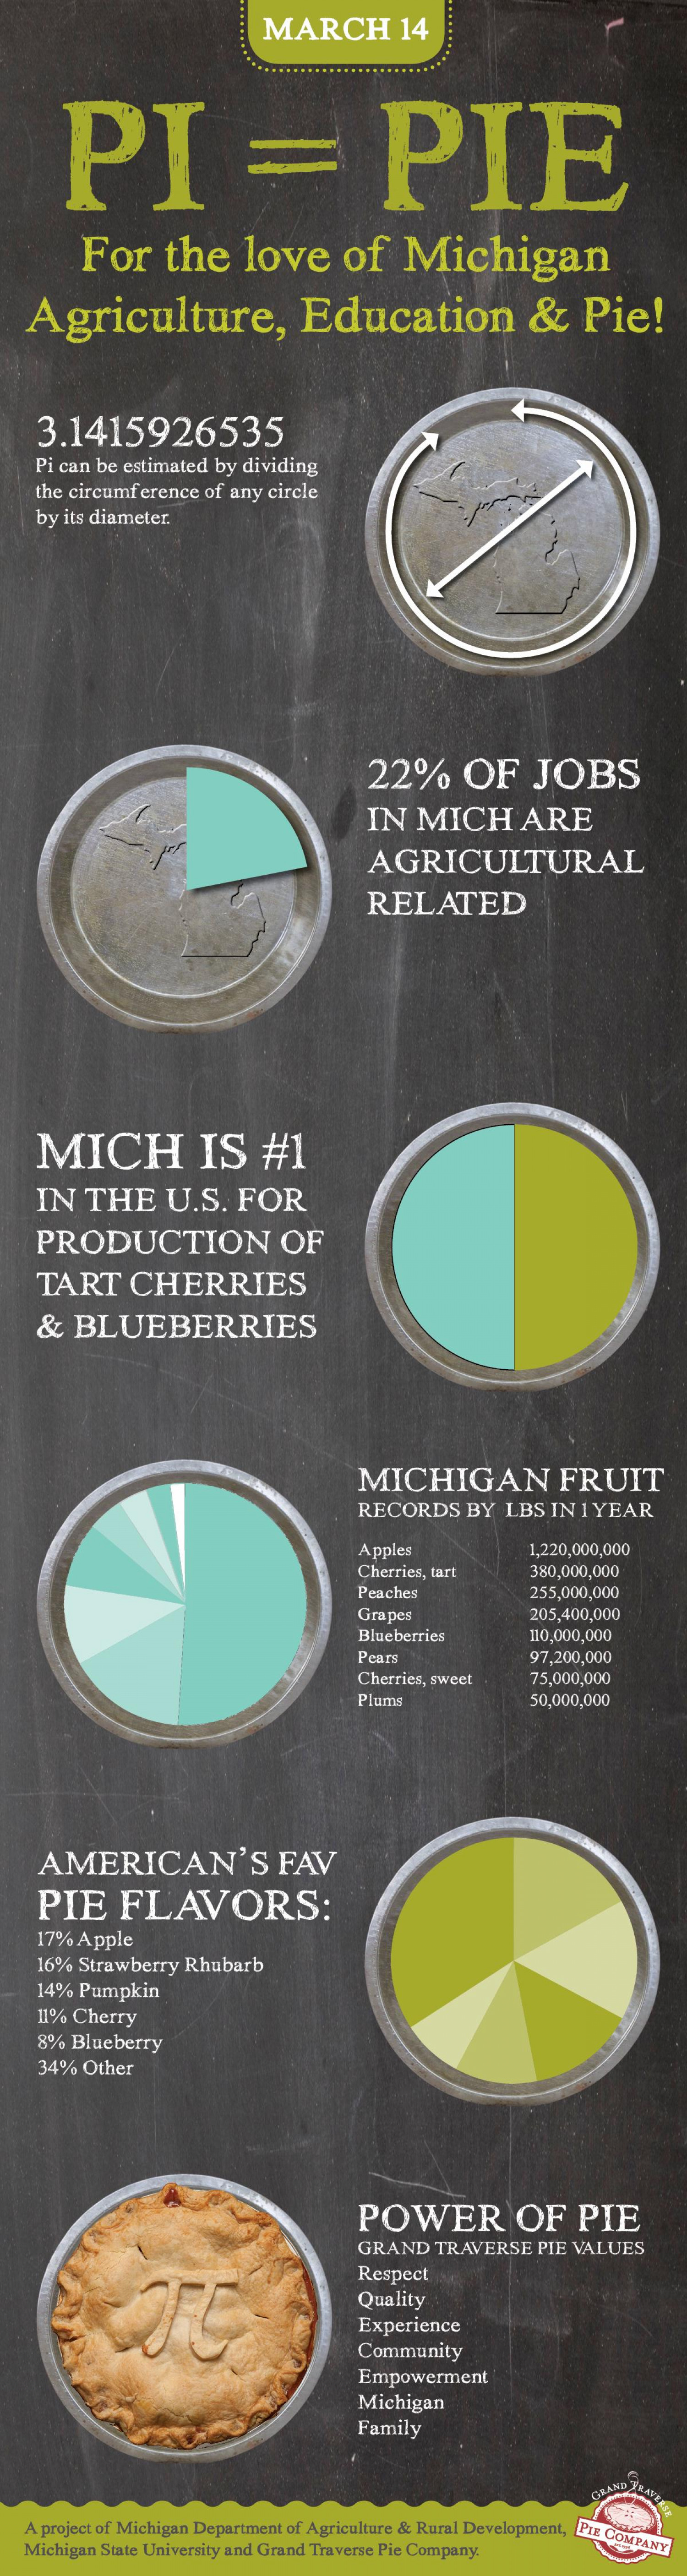 Pi = PIE Infographic